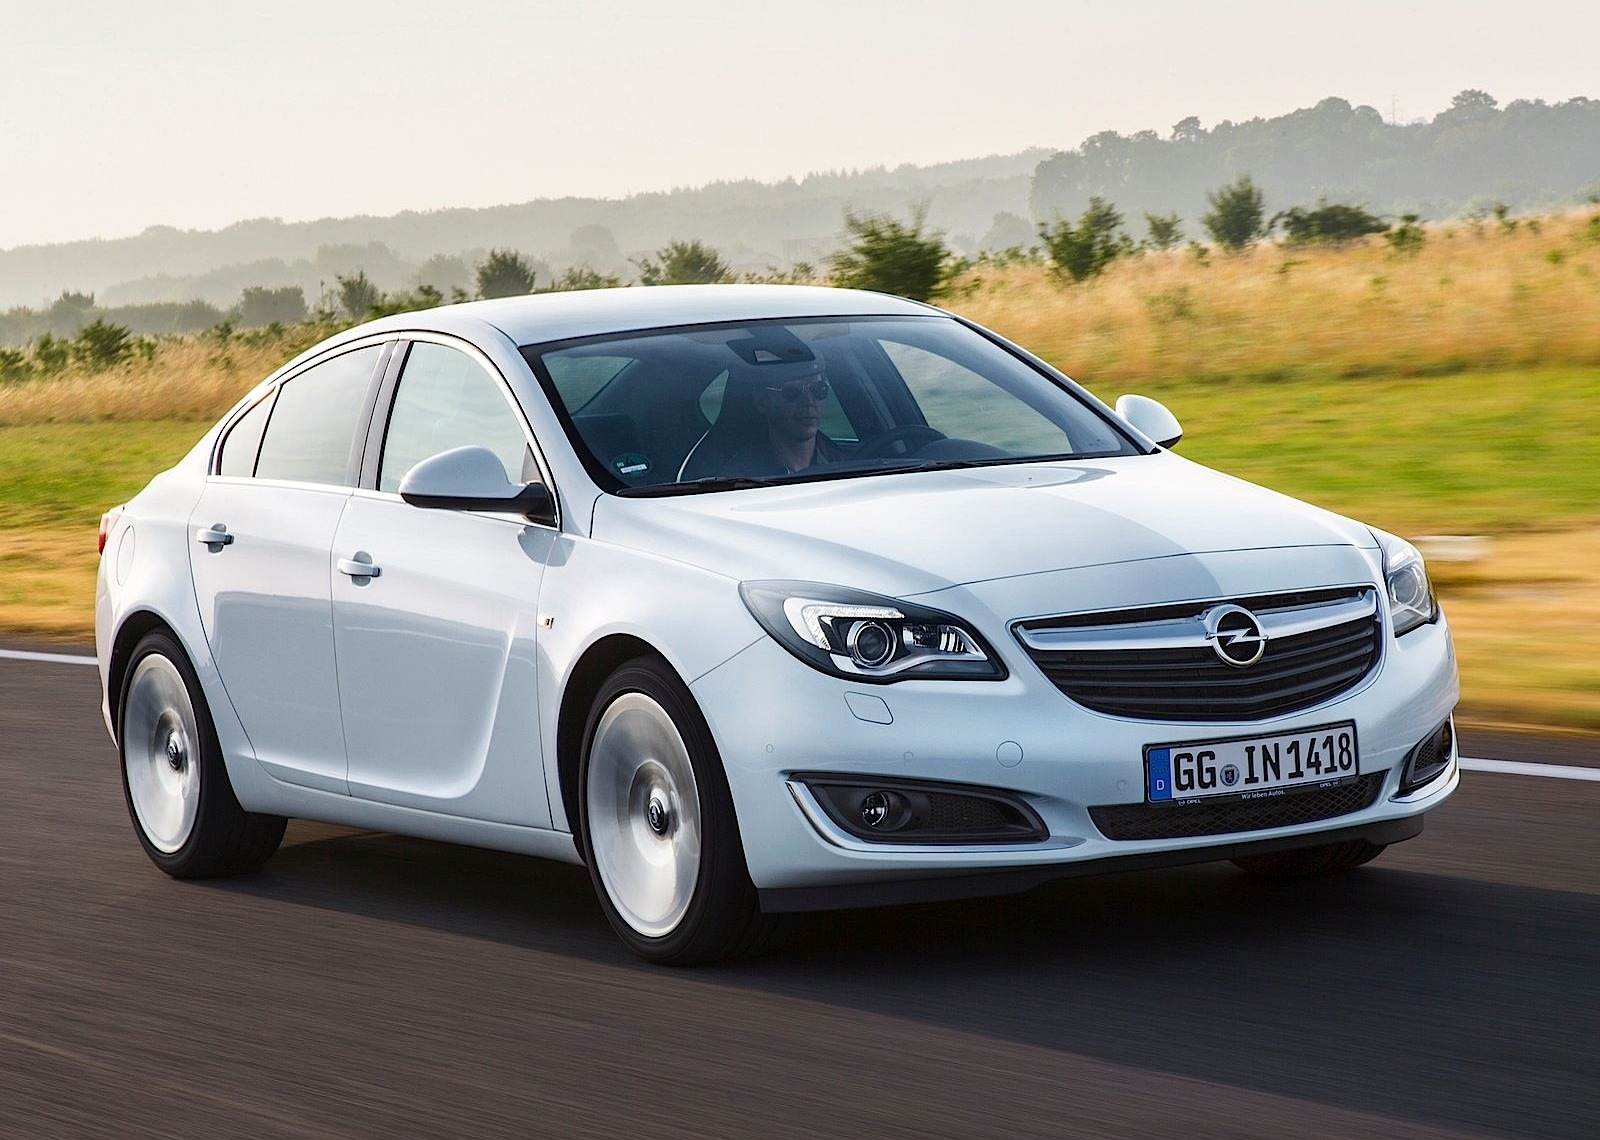 Opel Insignia Sedan Specs Photos 2013 2014 2015 2016 2017 Autoevolution